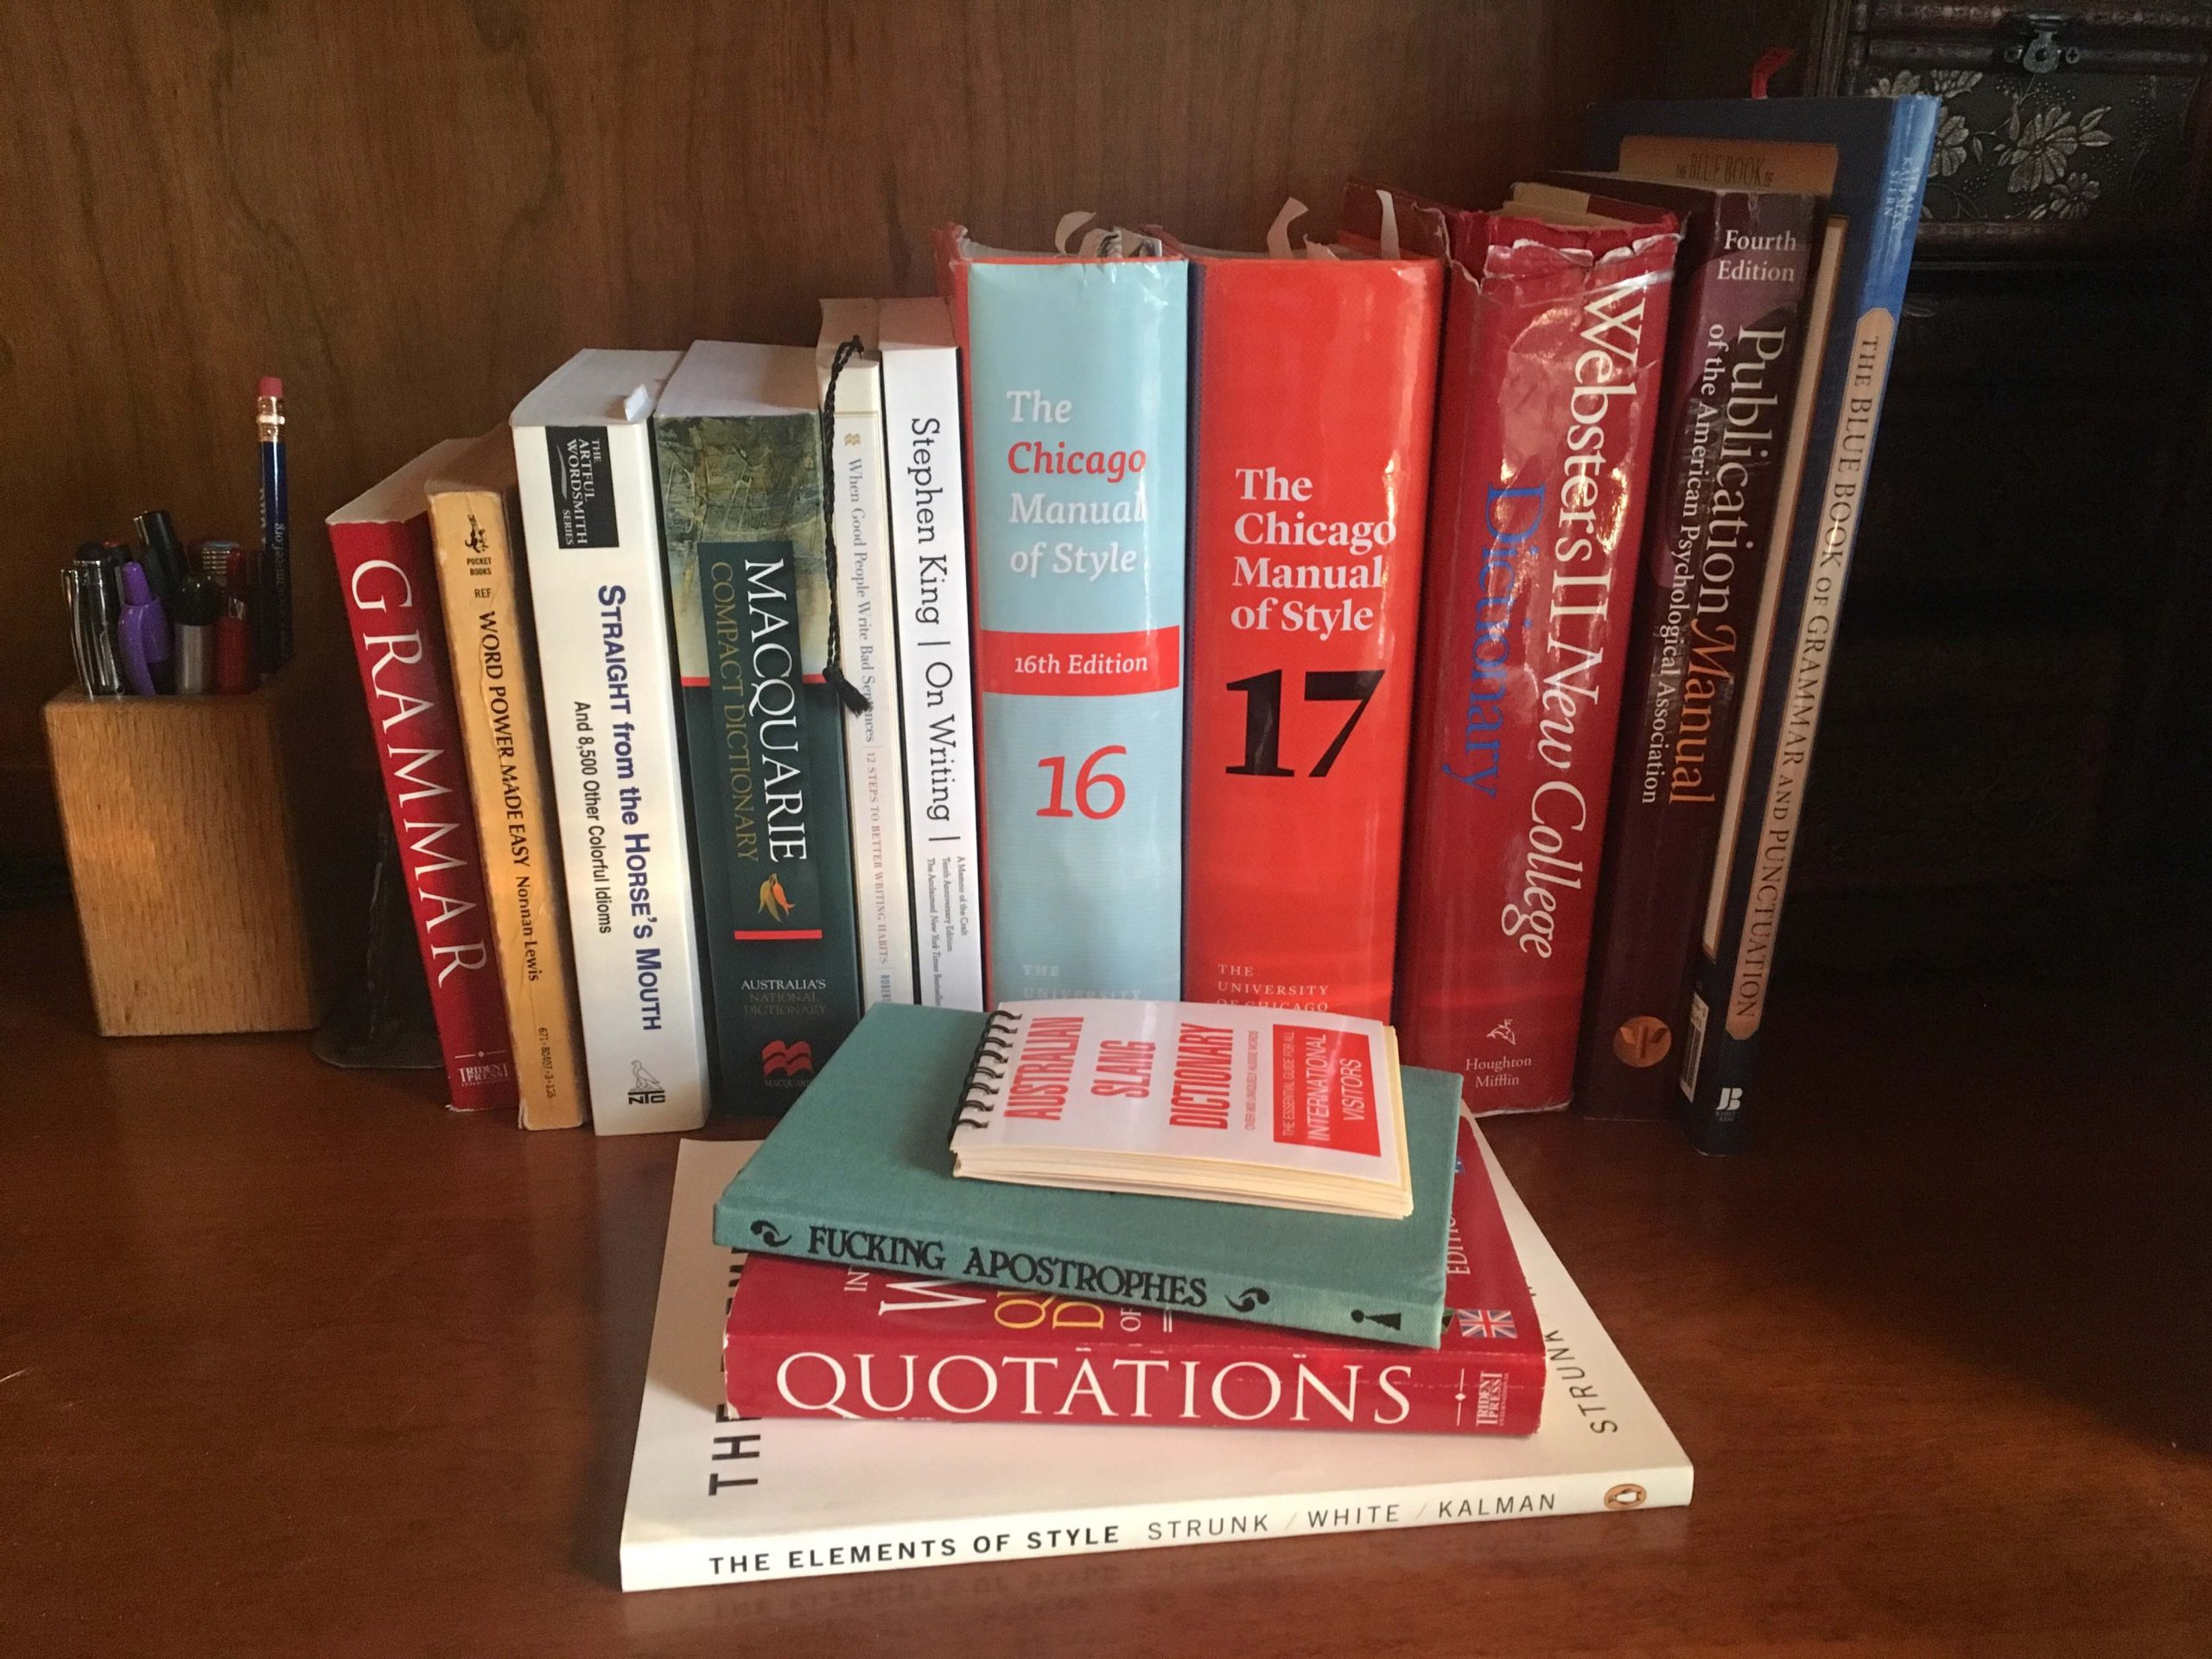 A shelf filled with books about copyediting and proofreading, the expertise you'll get when hiring a proofreader